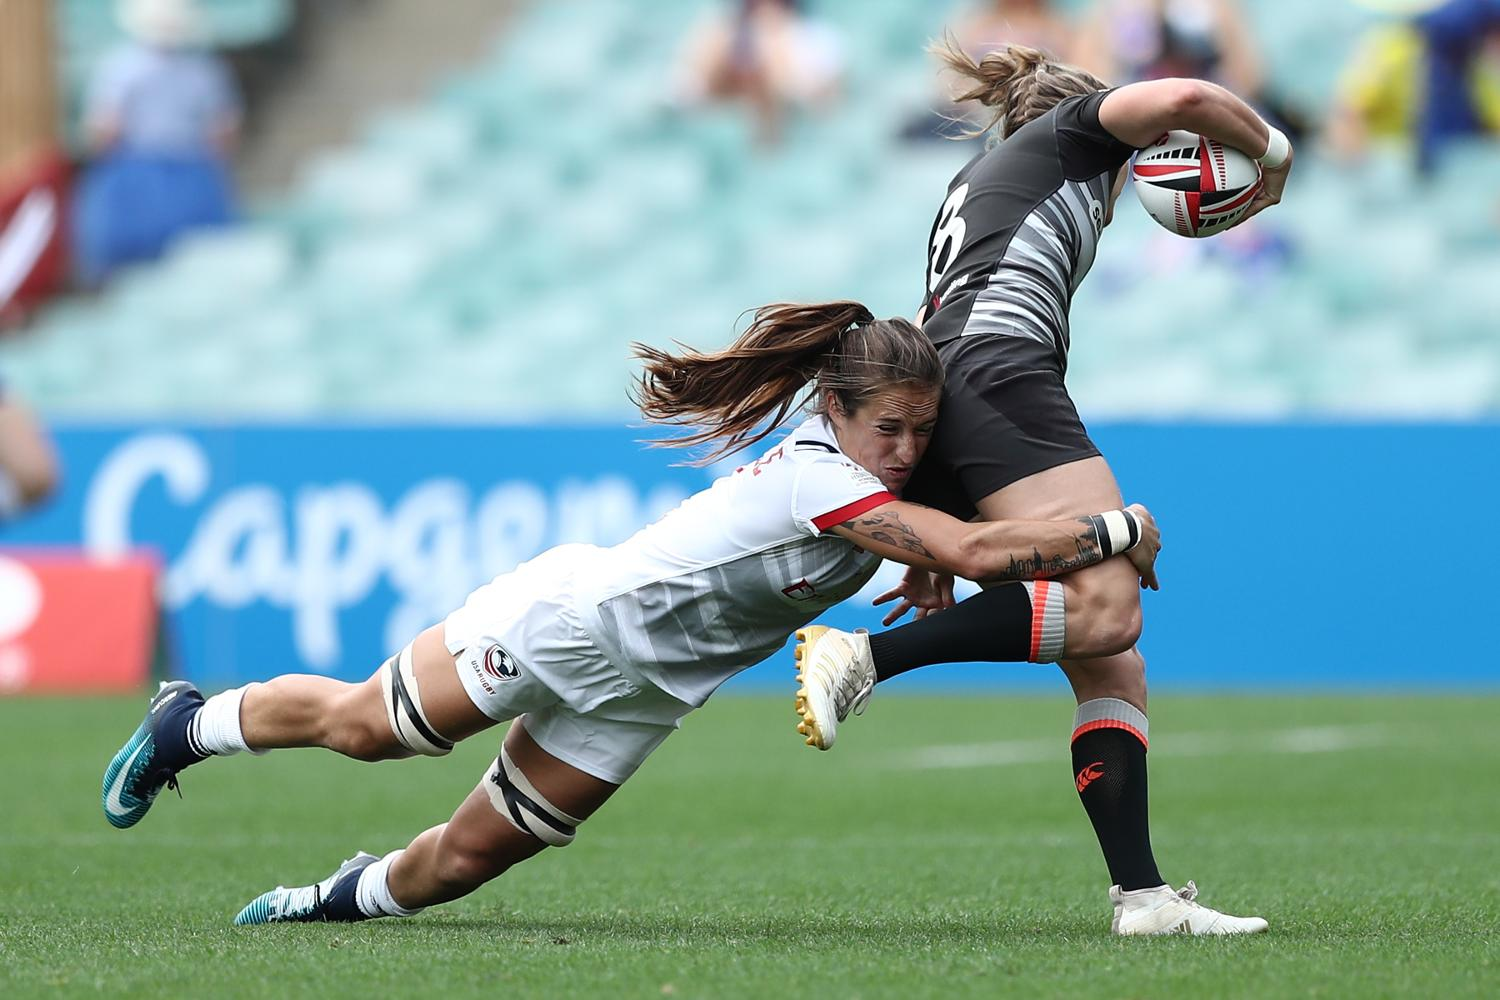 HSBC World Rugby Women's Sevens Series 2018 - Sydney Day 1